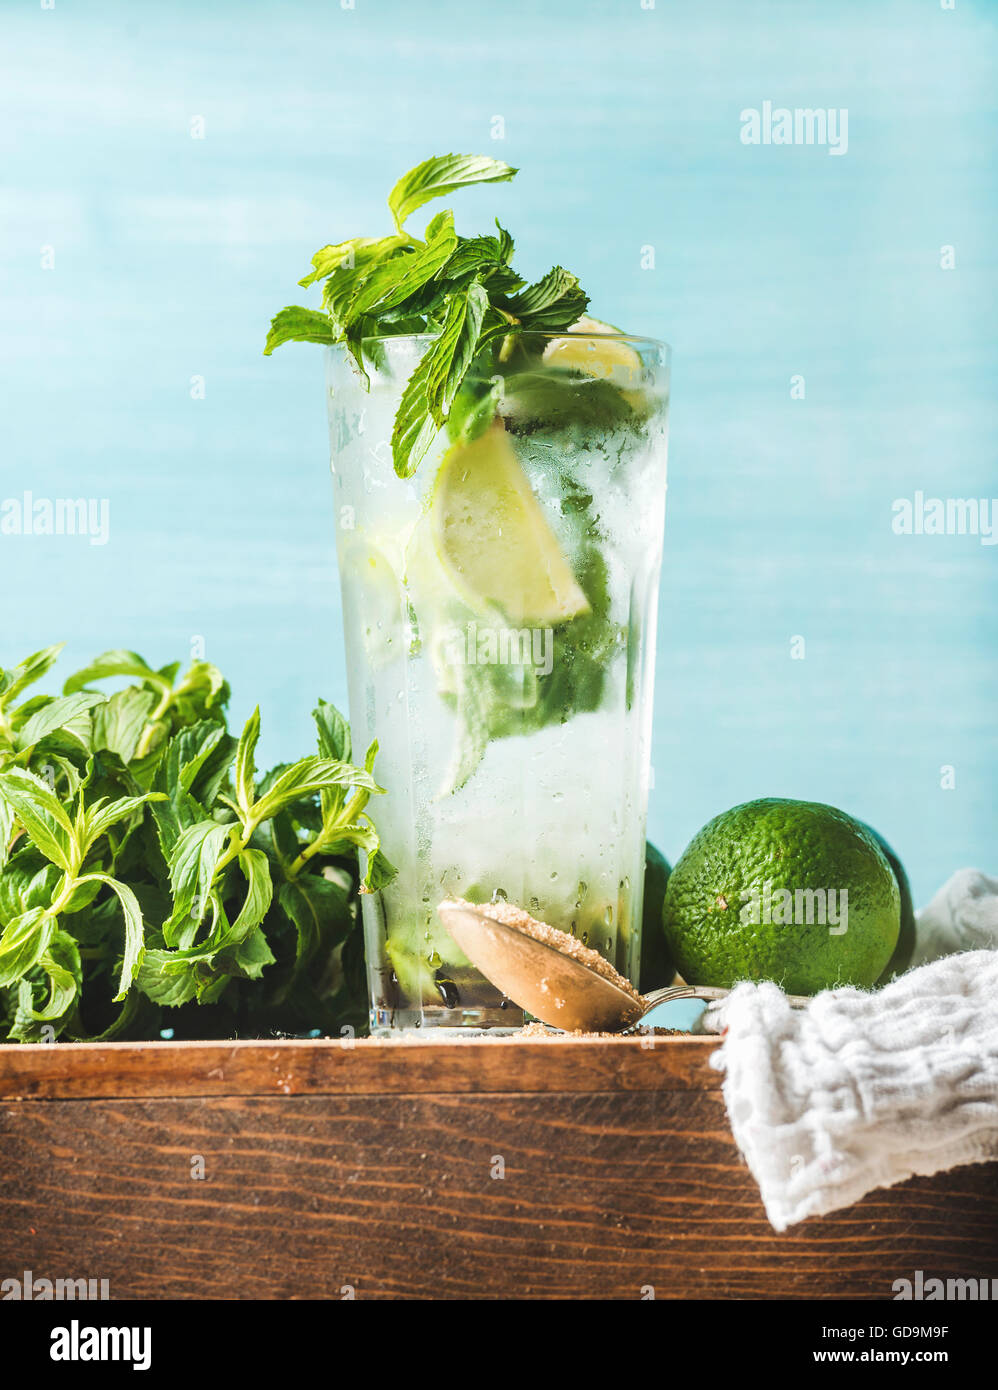 Homemade Mojito cocktail in tall glass served with bunch of mint, brown sugar and limes on wooden board. Turquoise - Stock Image